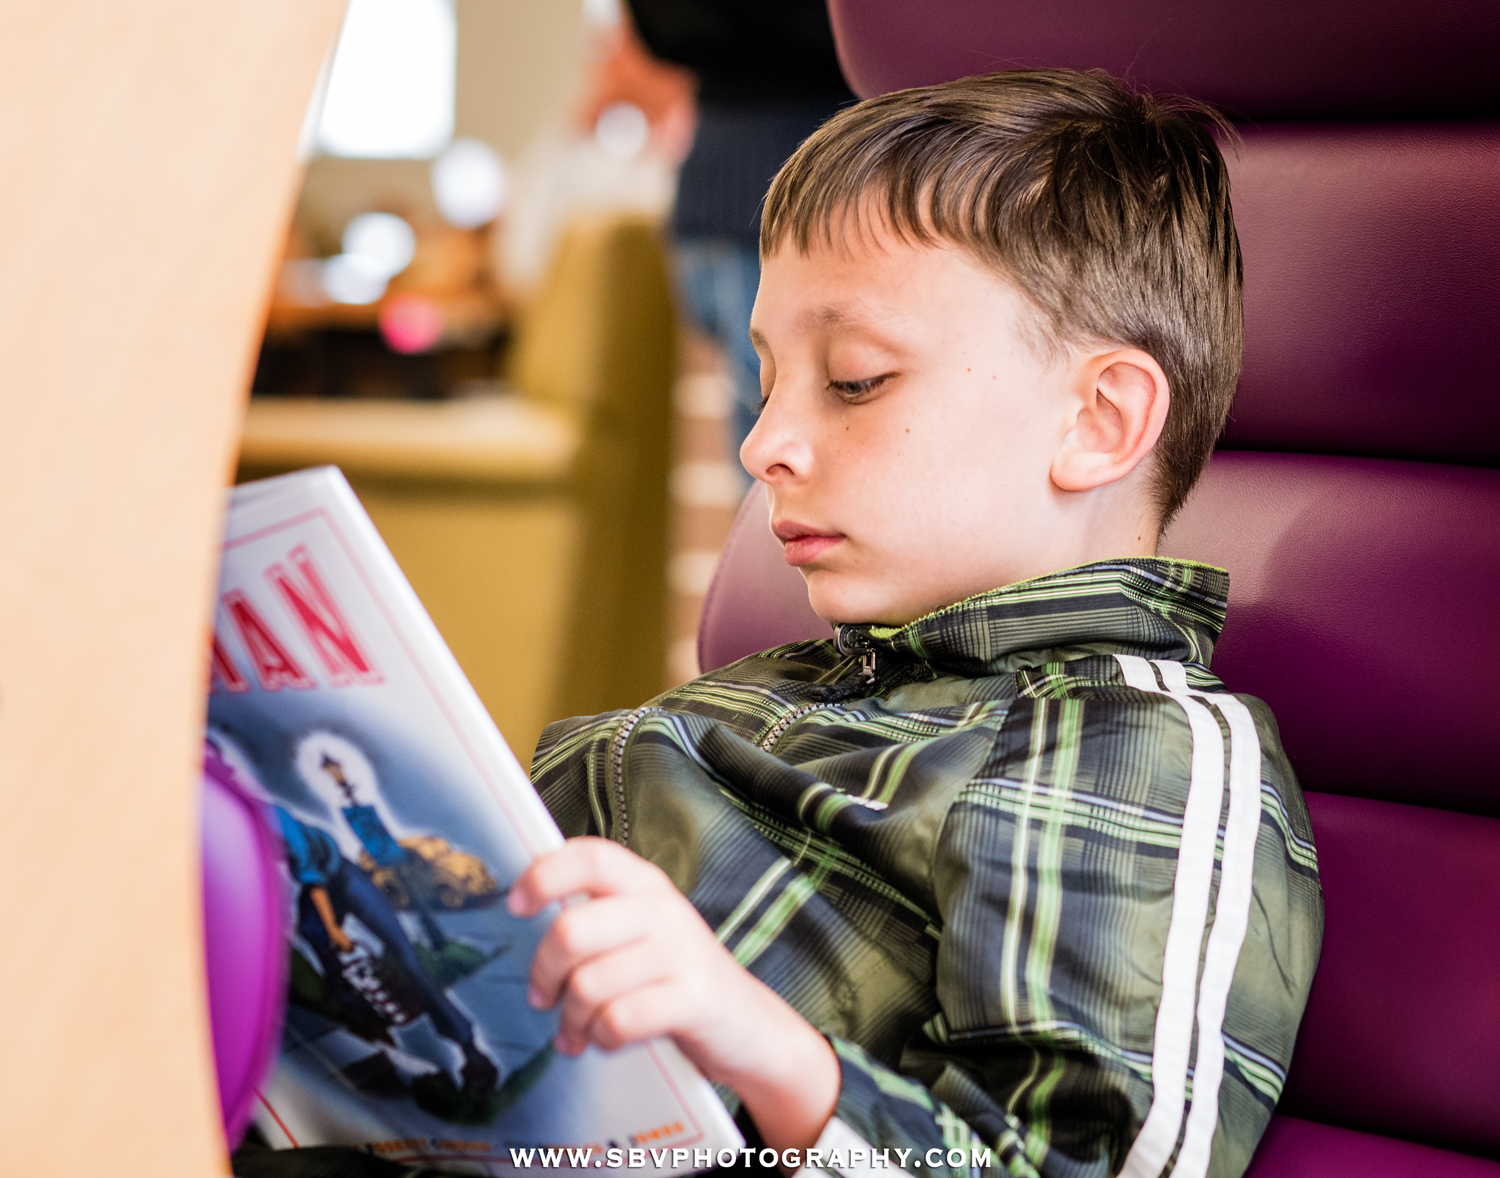 In this event photography photo, a child reads his graphic novel while attending the grand opening of the Griffith Library in Northwest Indiana.